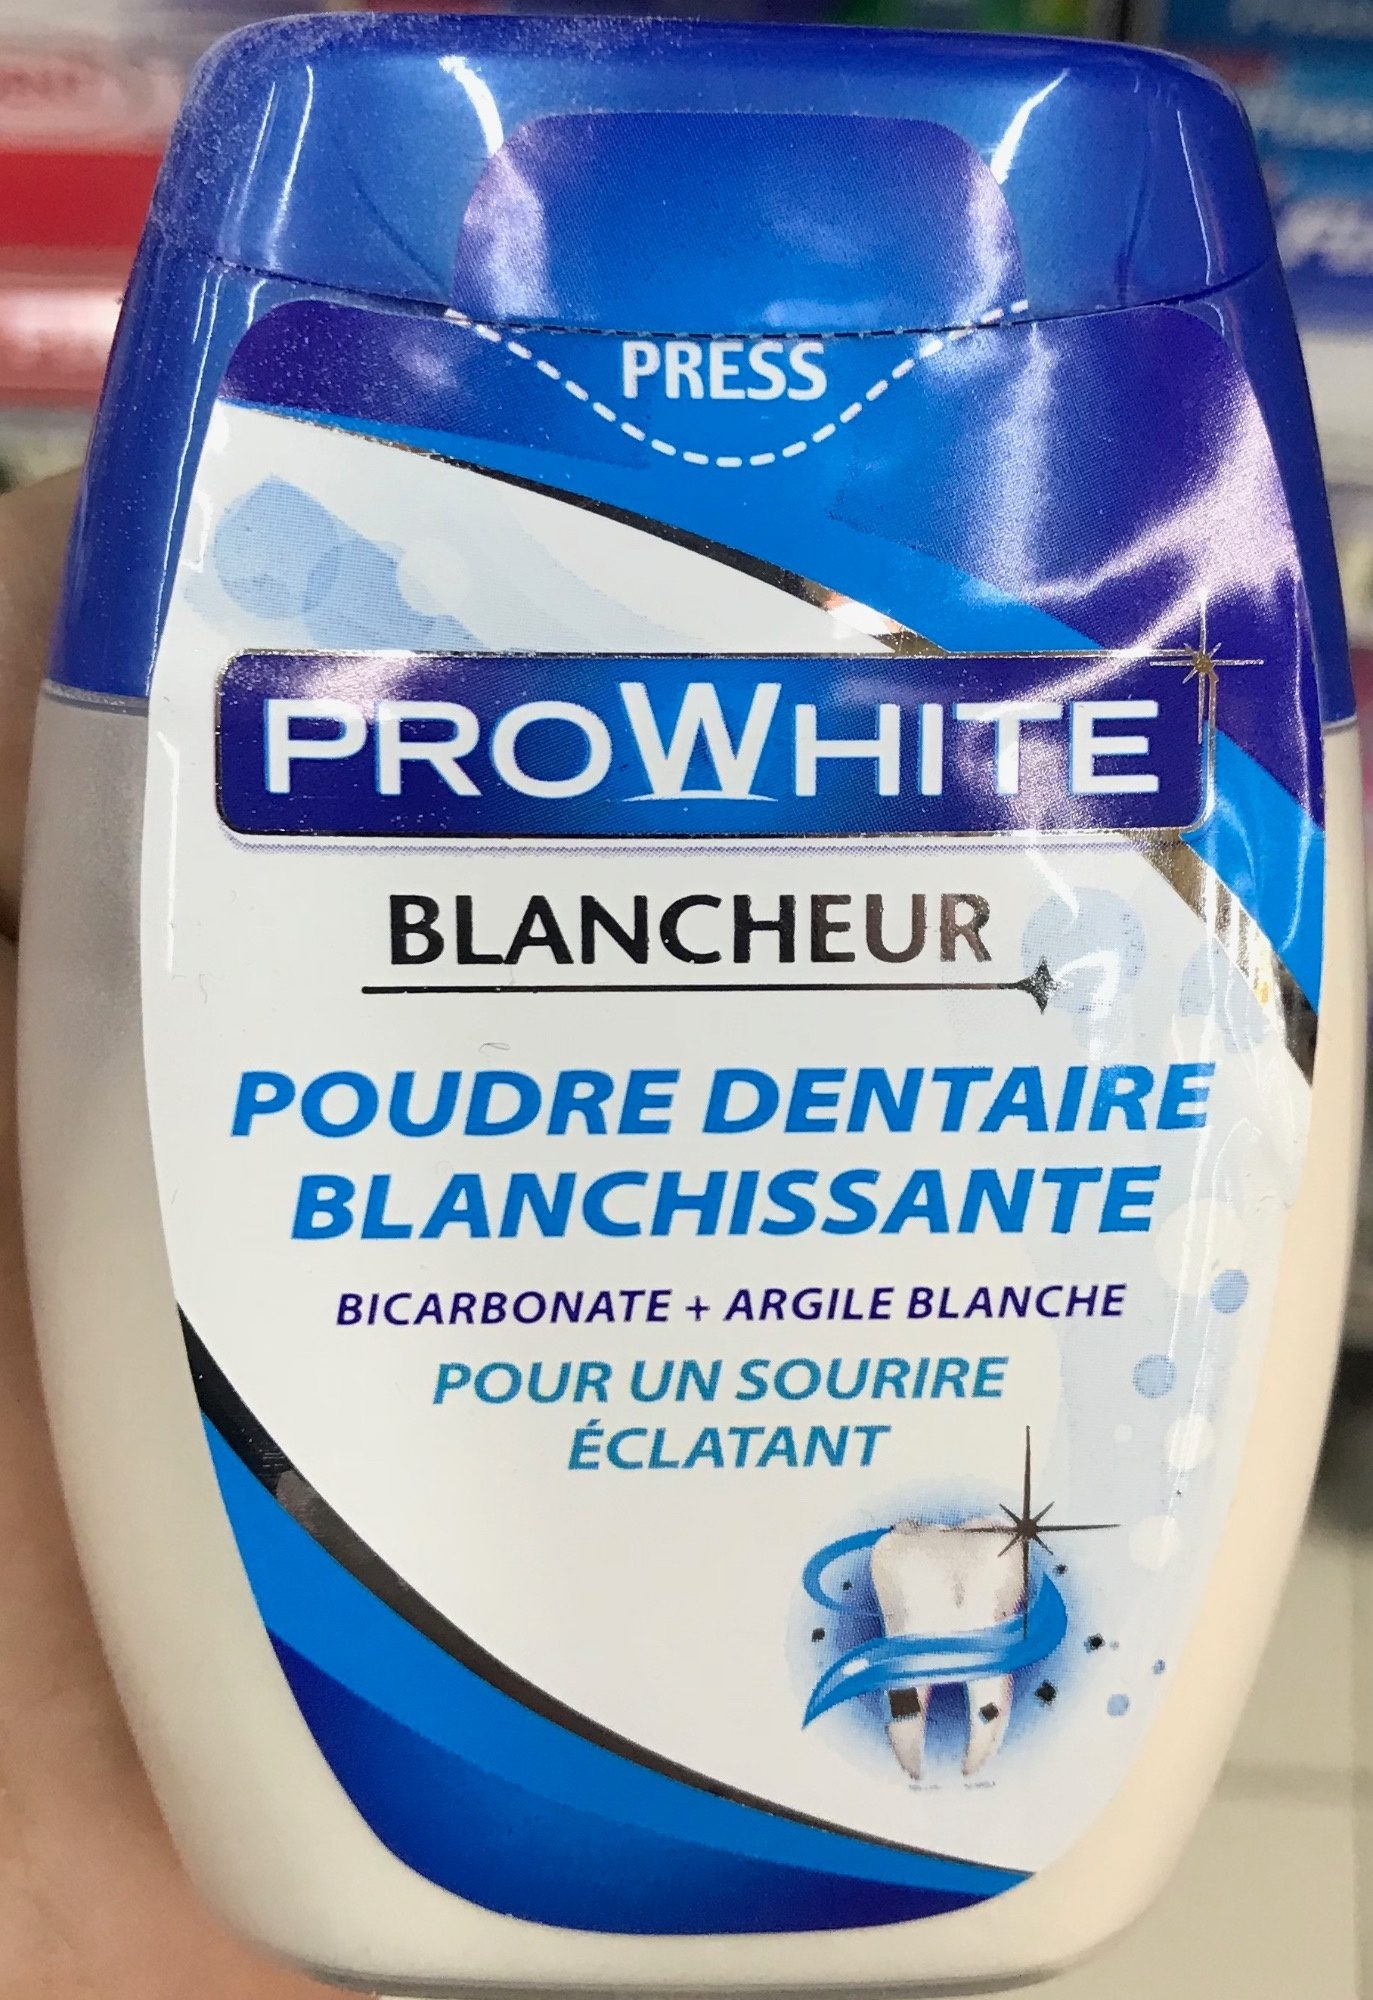 Poudre dentaire blanchissante - Product